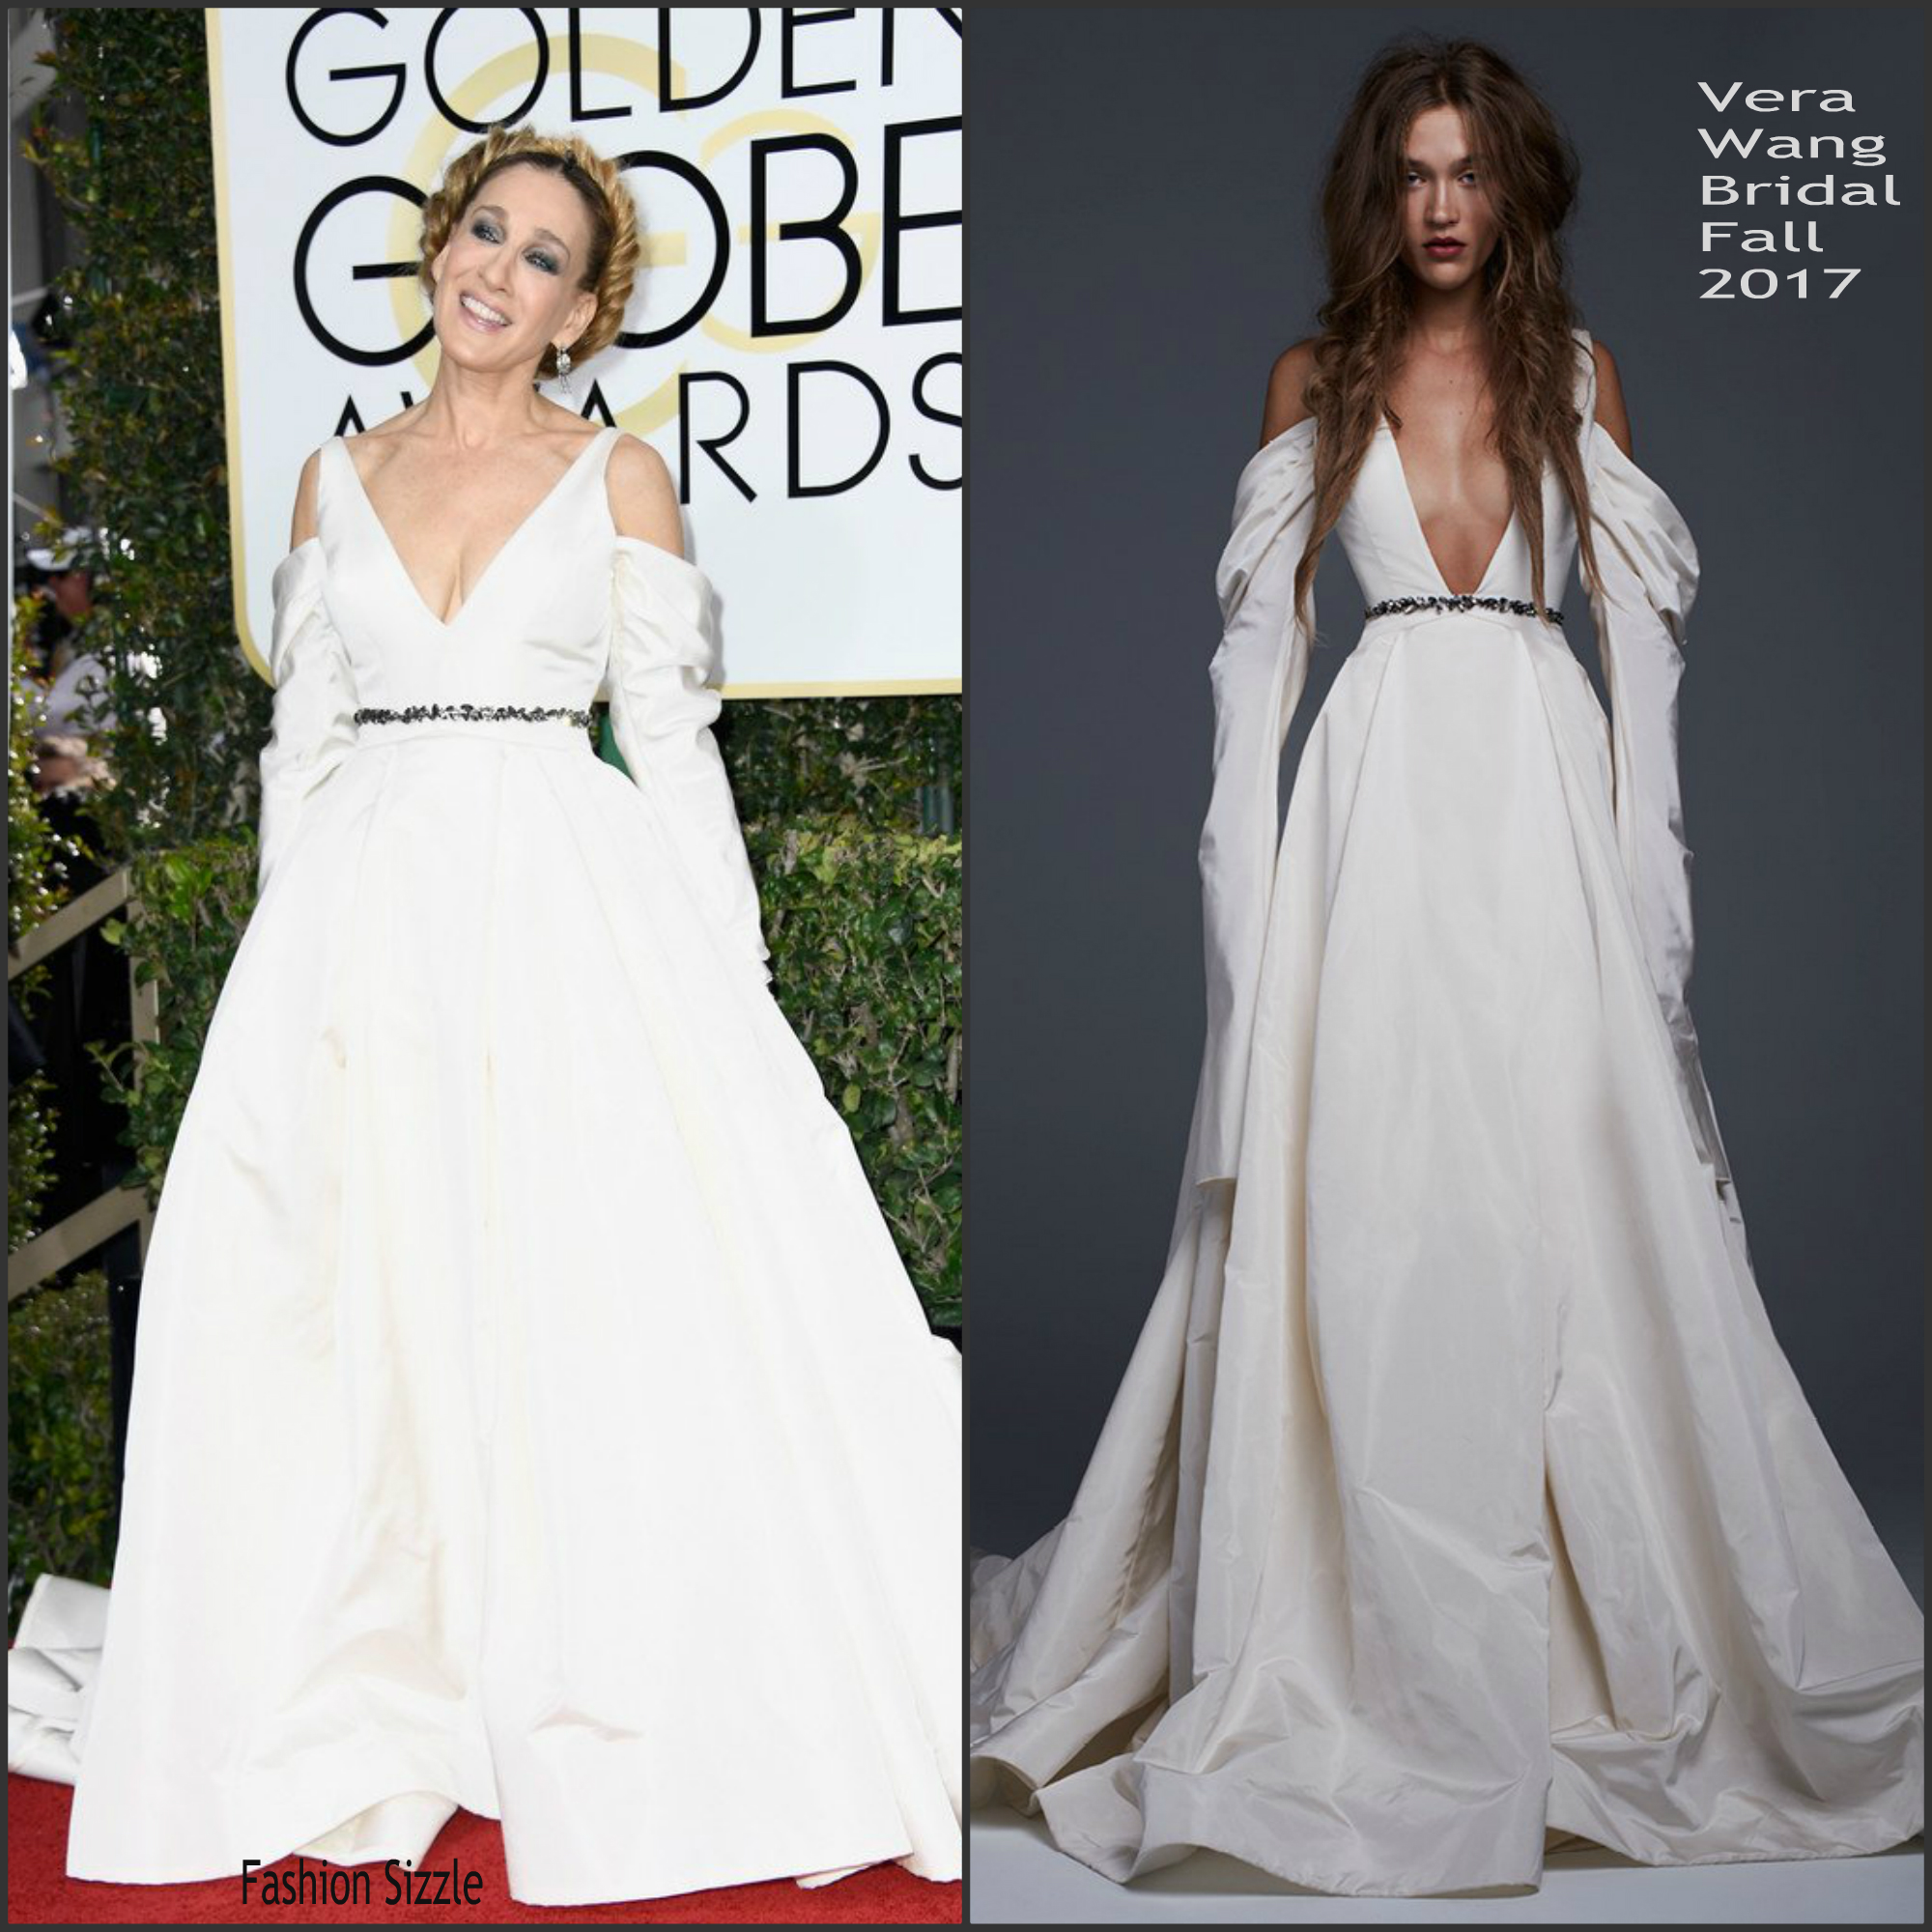 sarah-jessica-parker-at-2017-golden-globe-awards